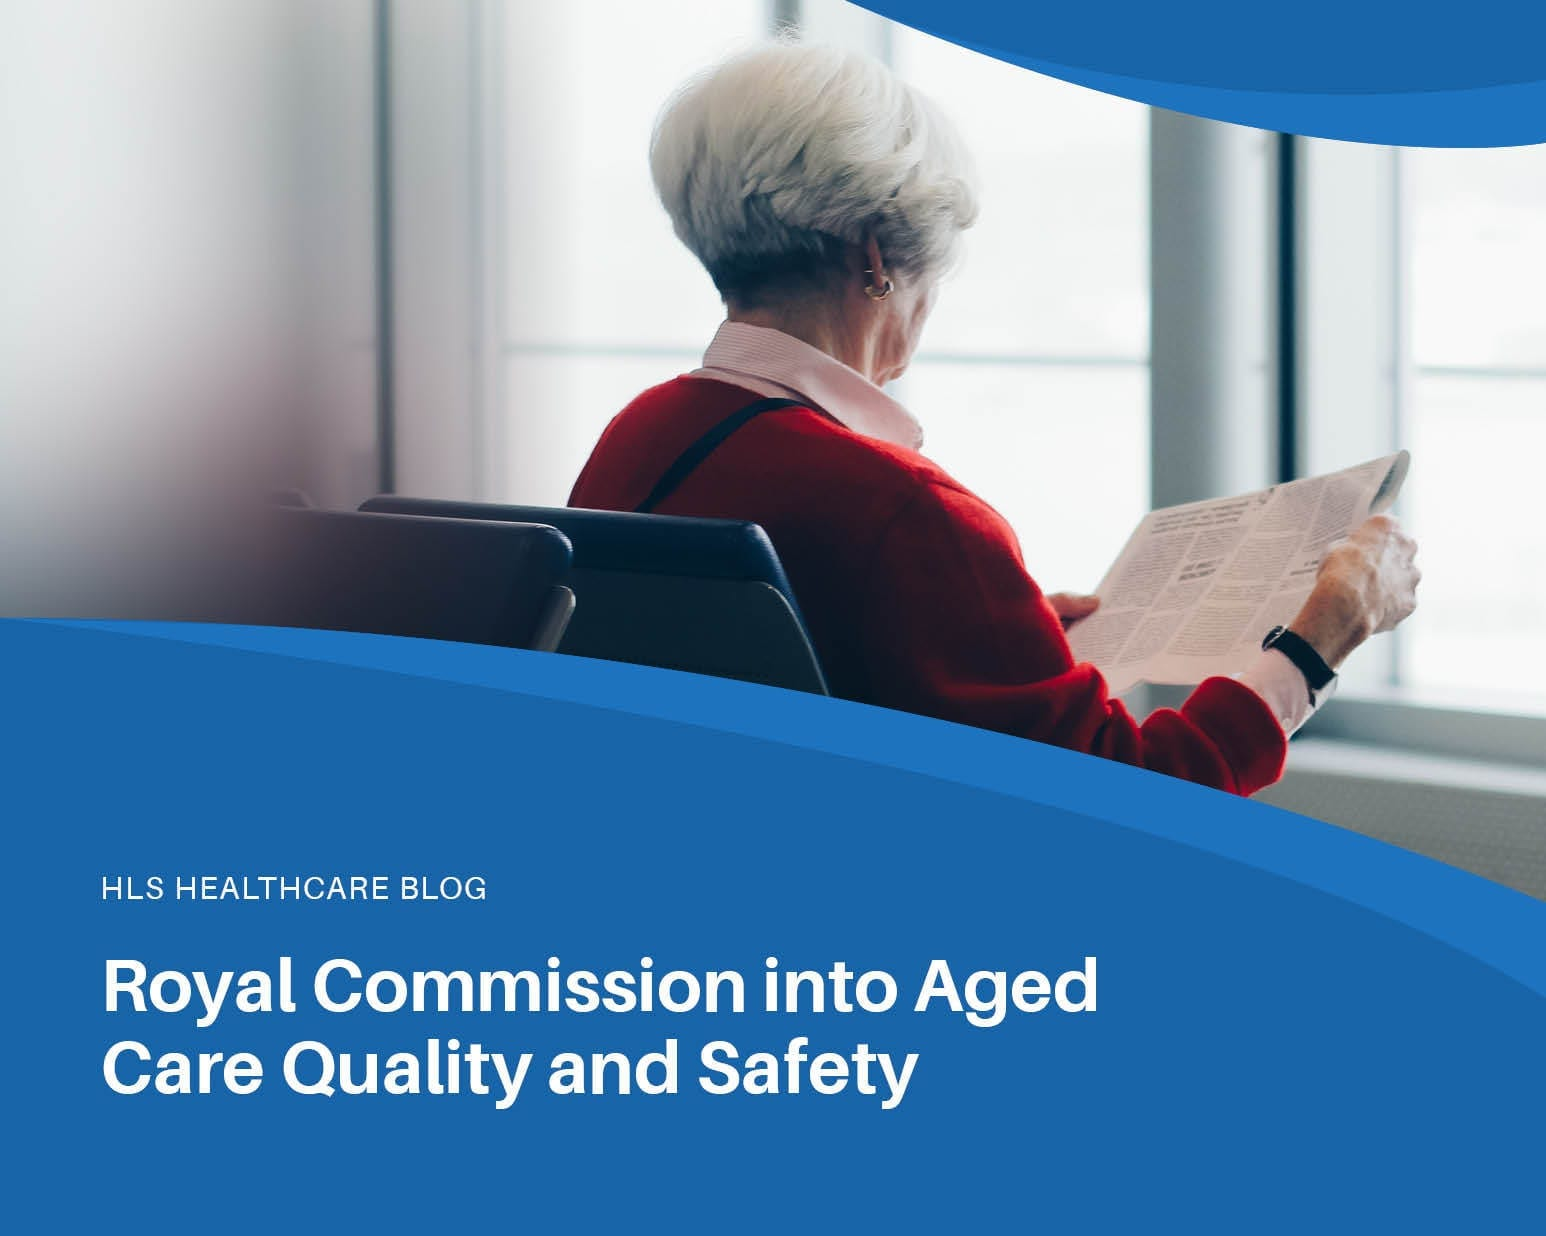 Aged Care Quality and Safety